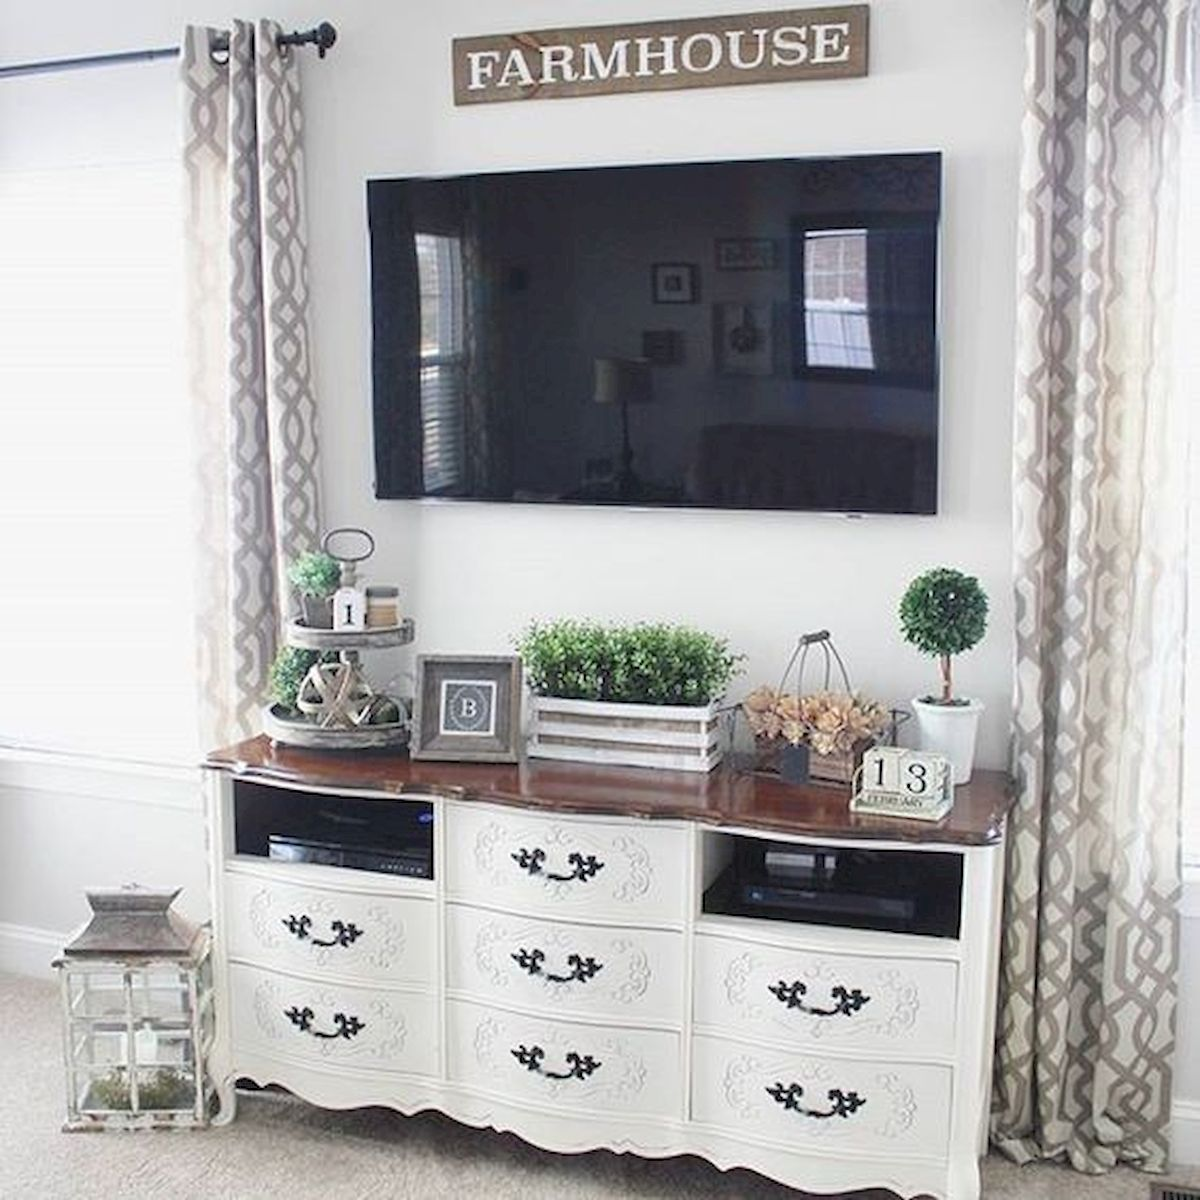 Pin by Pattie n things on House  Farm house living room, Tv stand